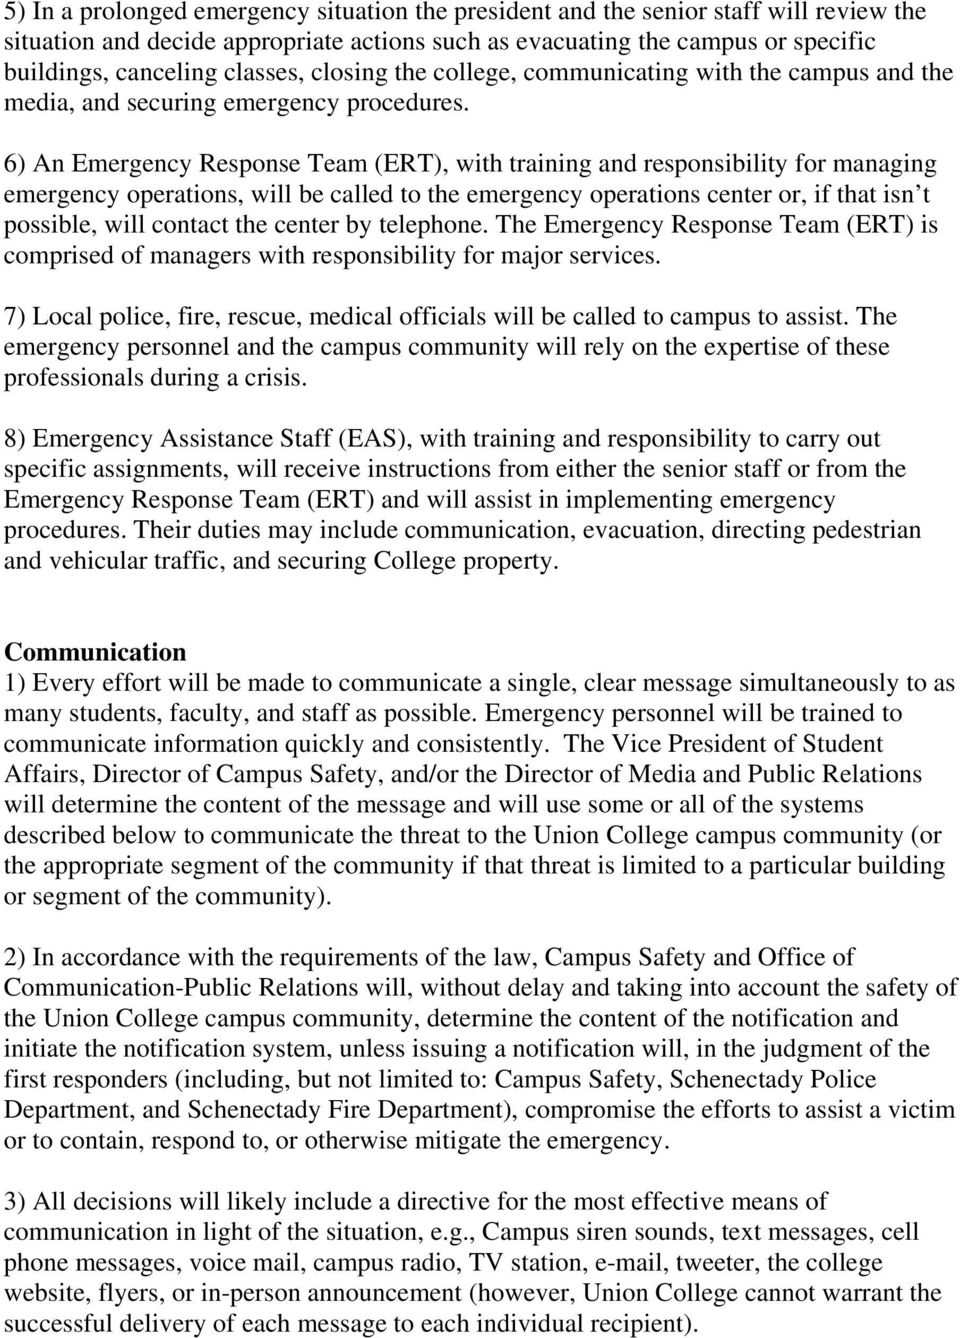 6) An Emergency Response Team (ERT), with training and responsibility for managing emergency operations, will be called to the emergency operations center or, if that isn t possible, will contact the